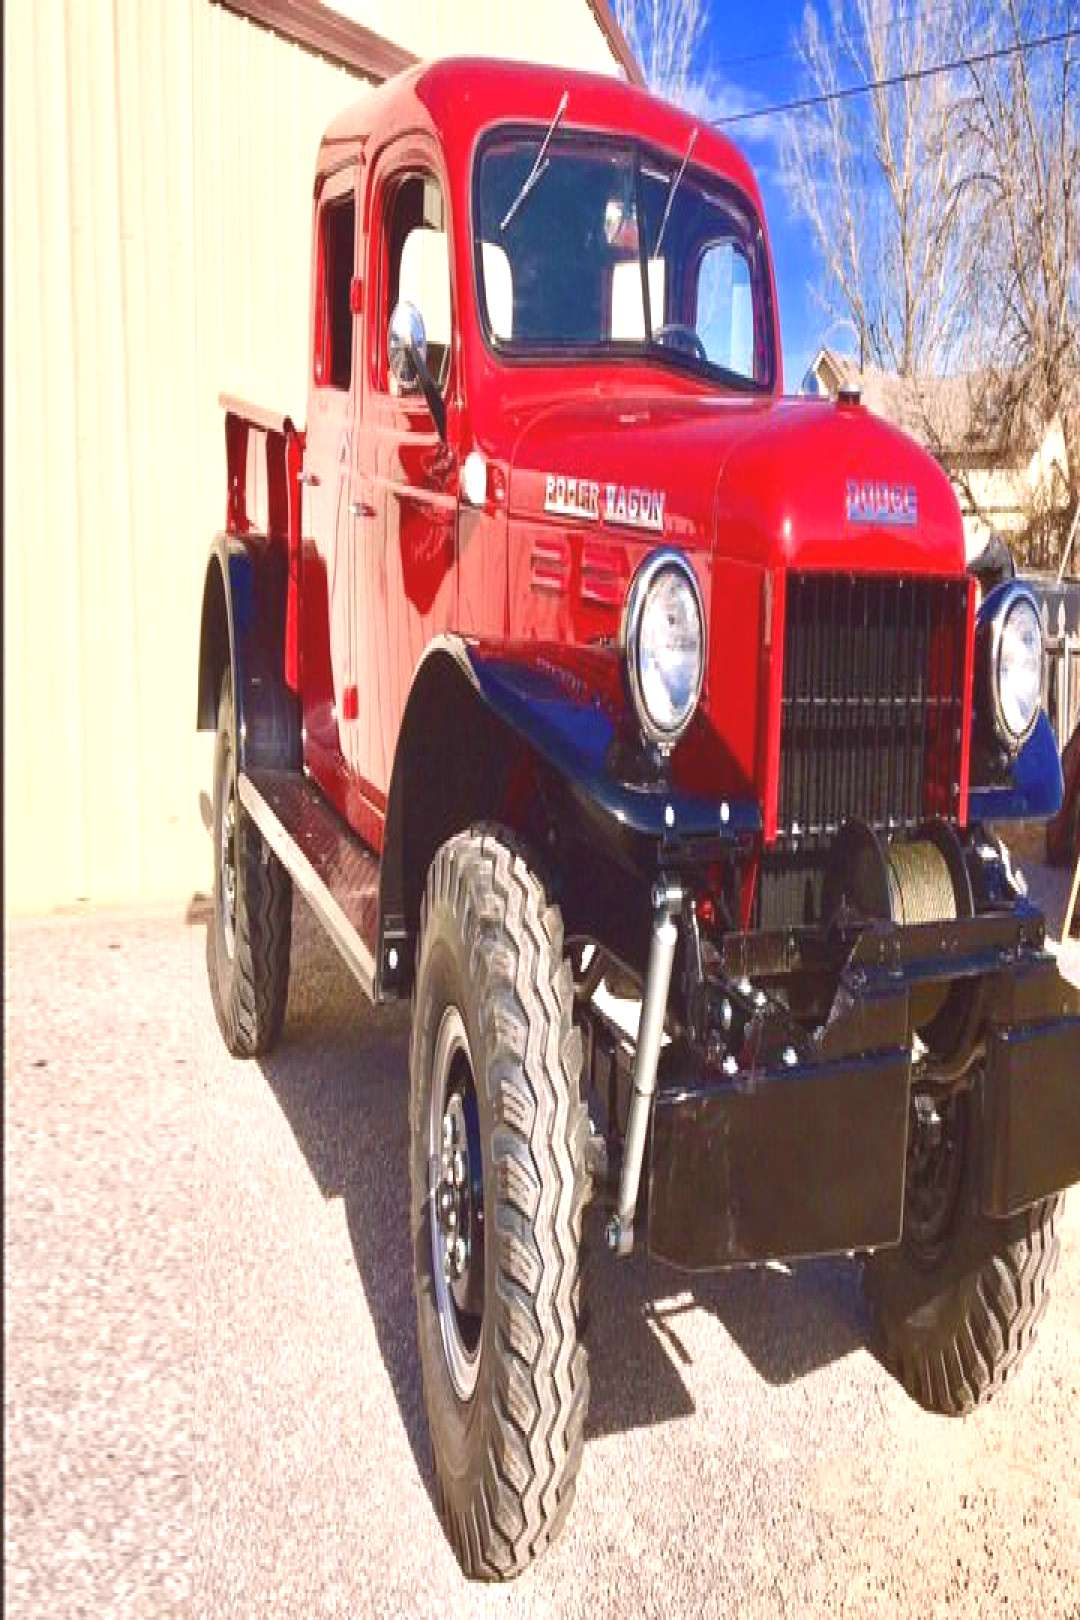 1954 DODGE POWER WAGON CREW-CAB PICKUP